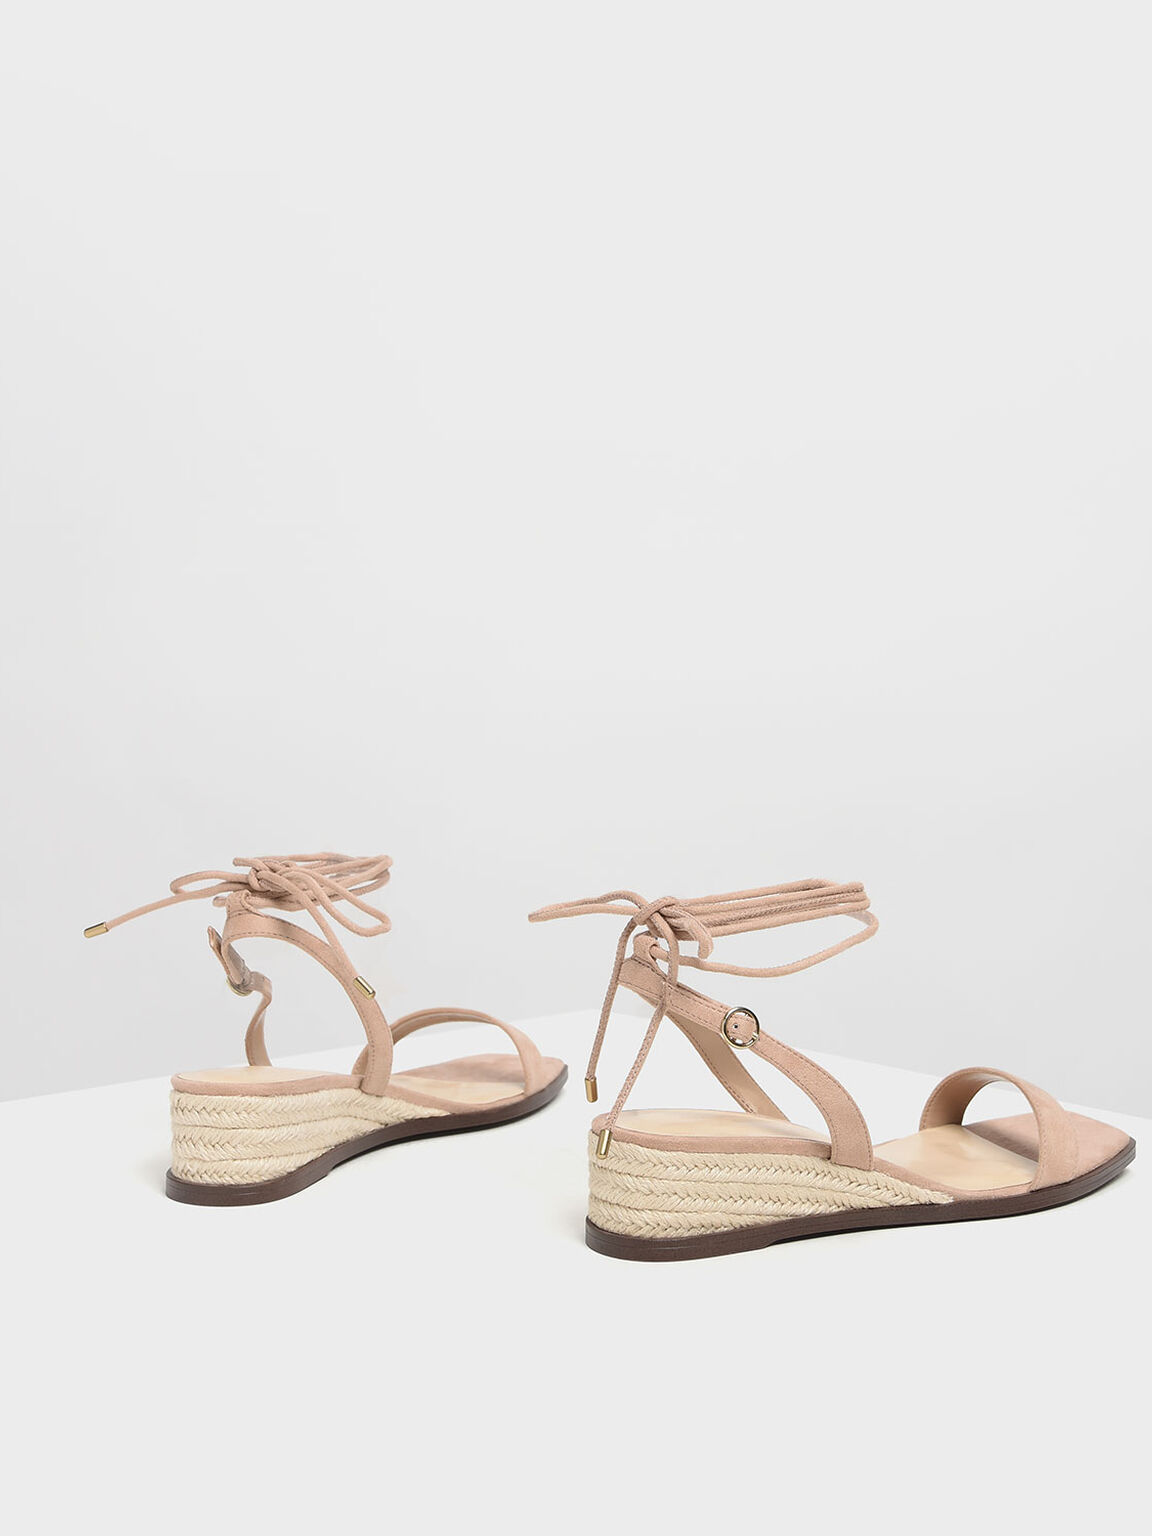 Strappy Espadrille Wedges, Beige, hi-res